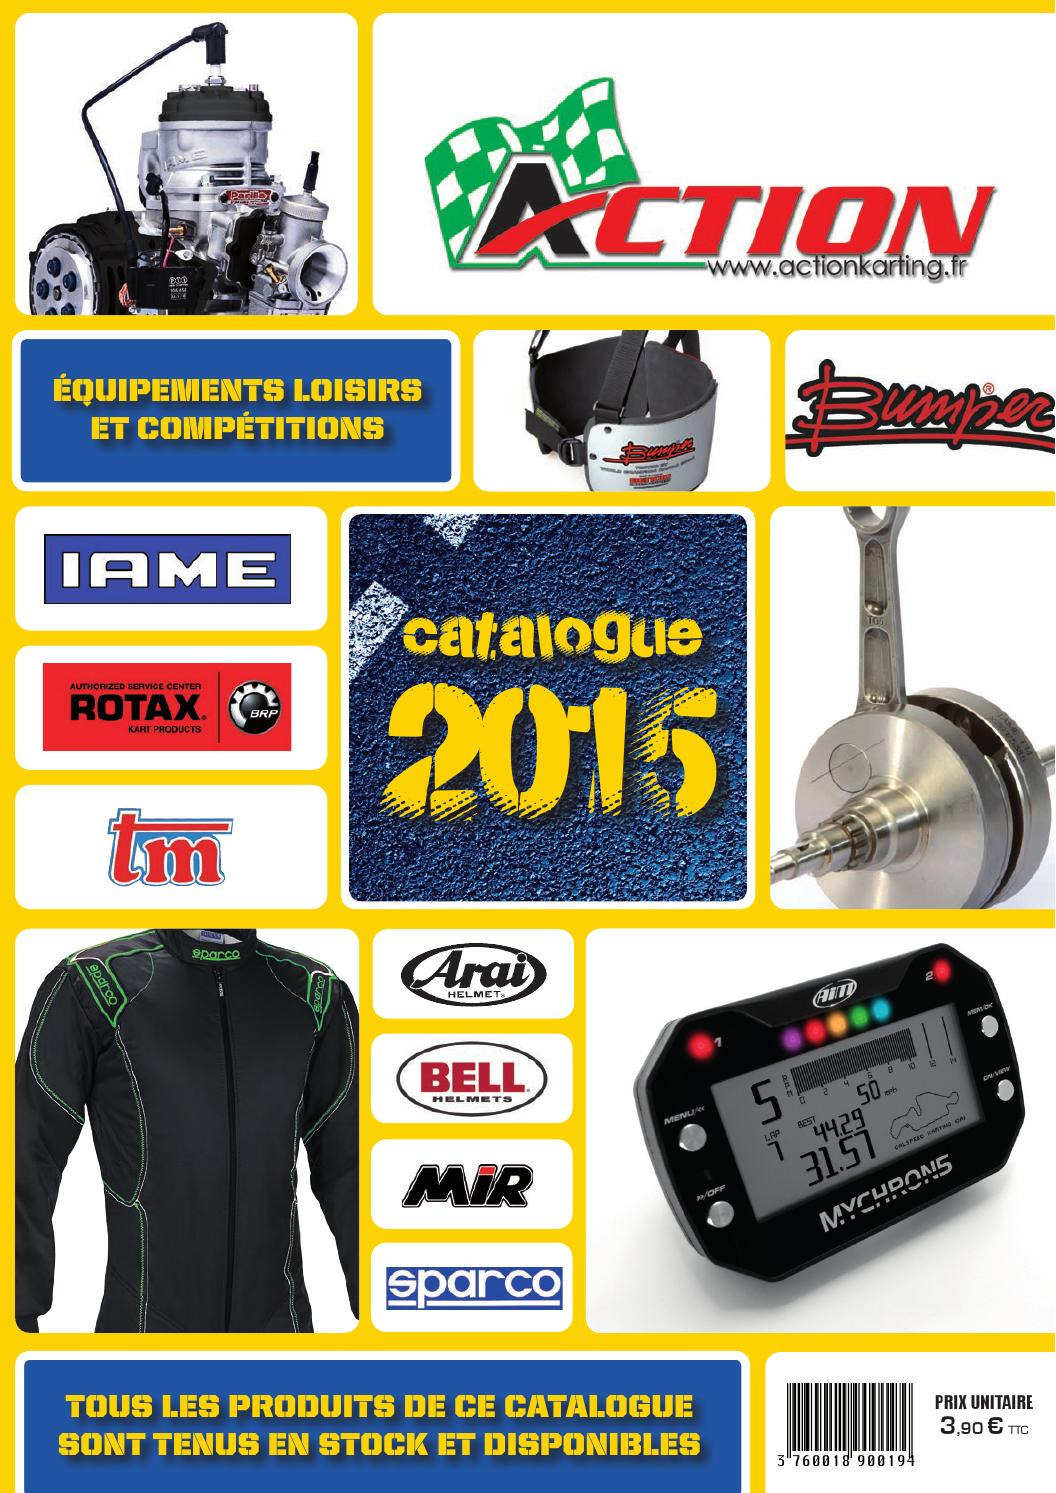 Action Karting Catalogue 2015 by Action Karting issuu